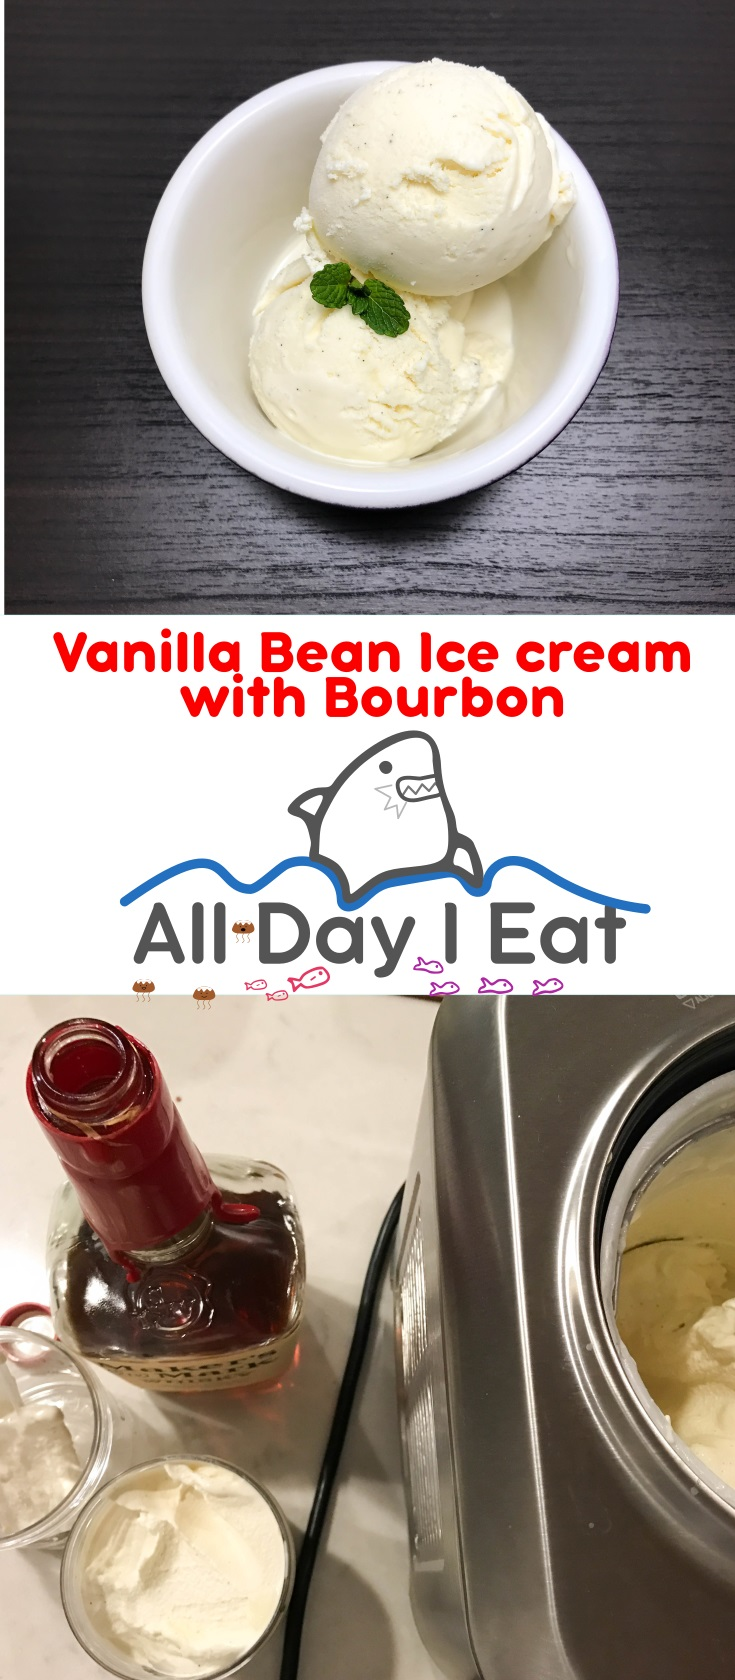 Vanilla Bean Ice cream with Bourbon. A sophisticated ice cream for adults, a rich and deep vanilla flavor is complemented with a splash of bourbon. | www.alldayieat.com